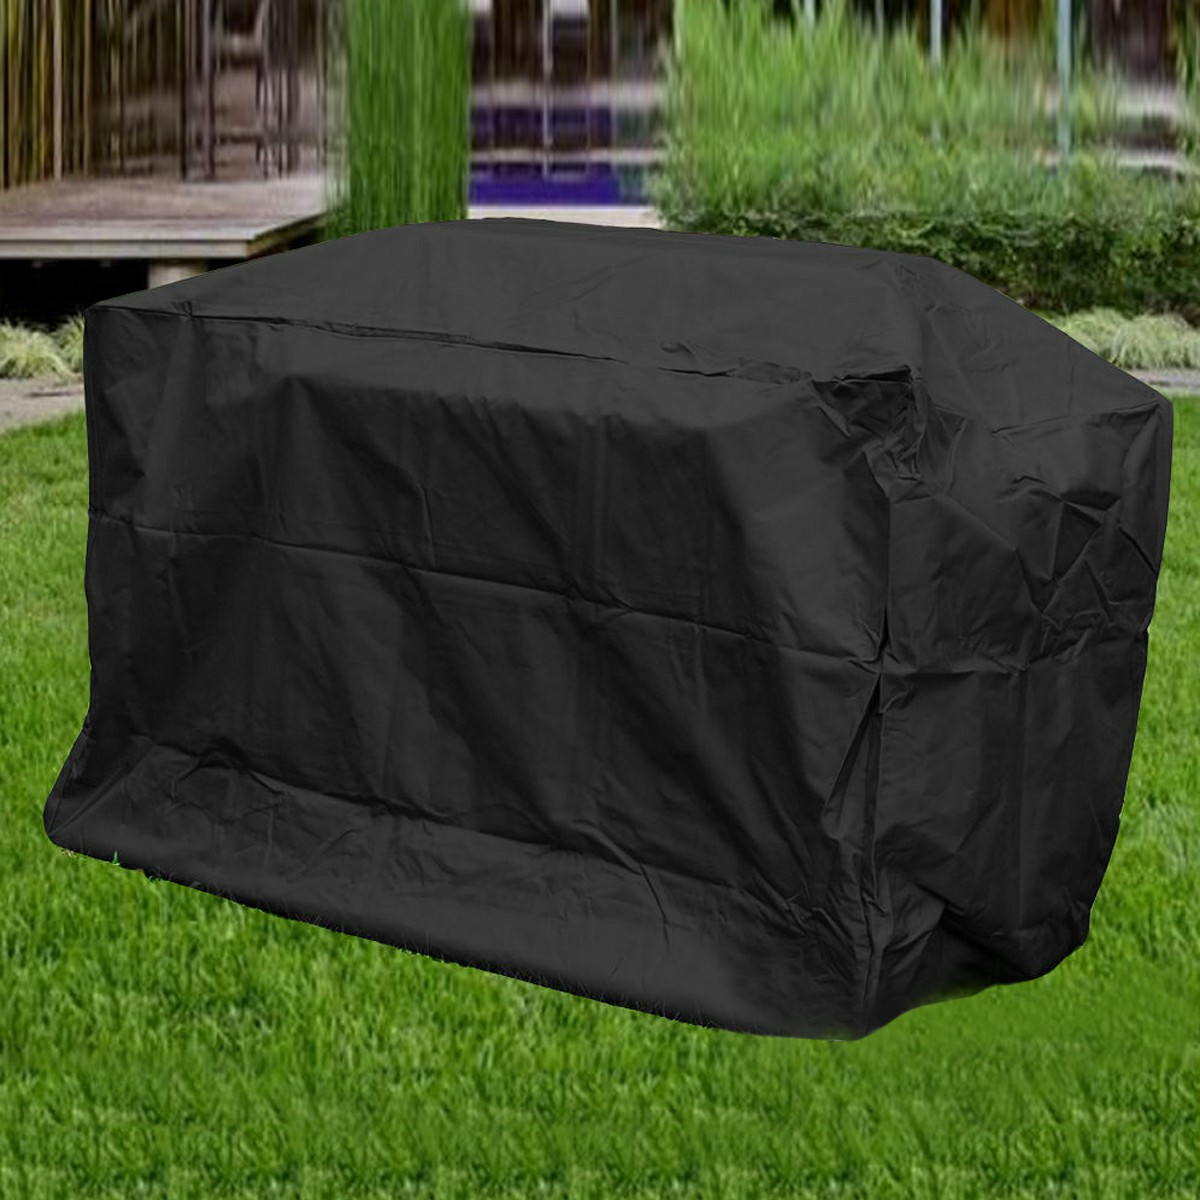 BBQ Cover Barbecue Cover Grill Cover Protector Waterproof 170x61x117cm